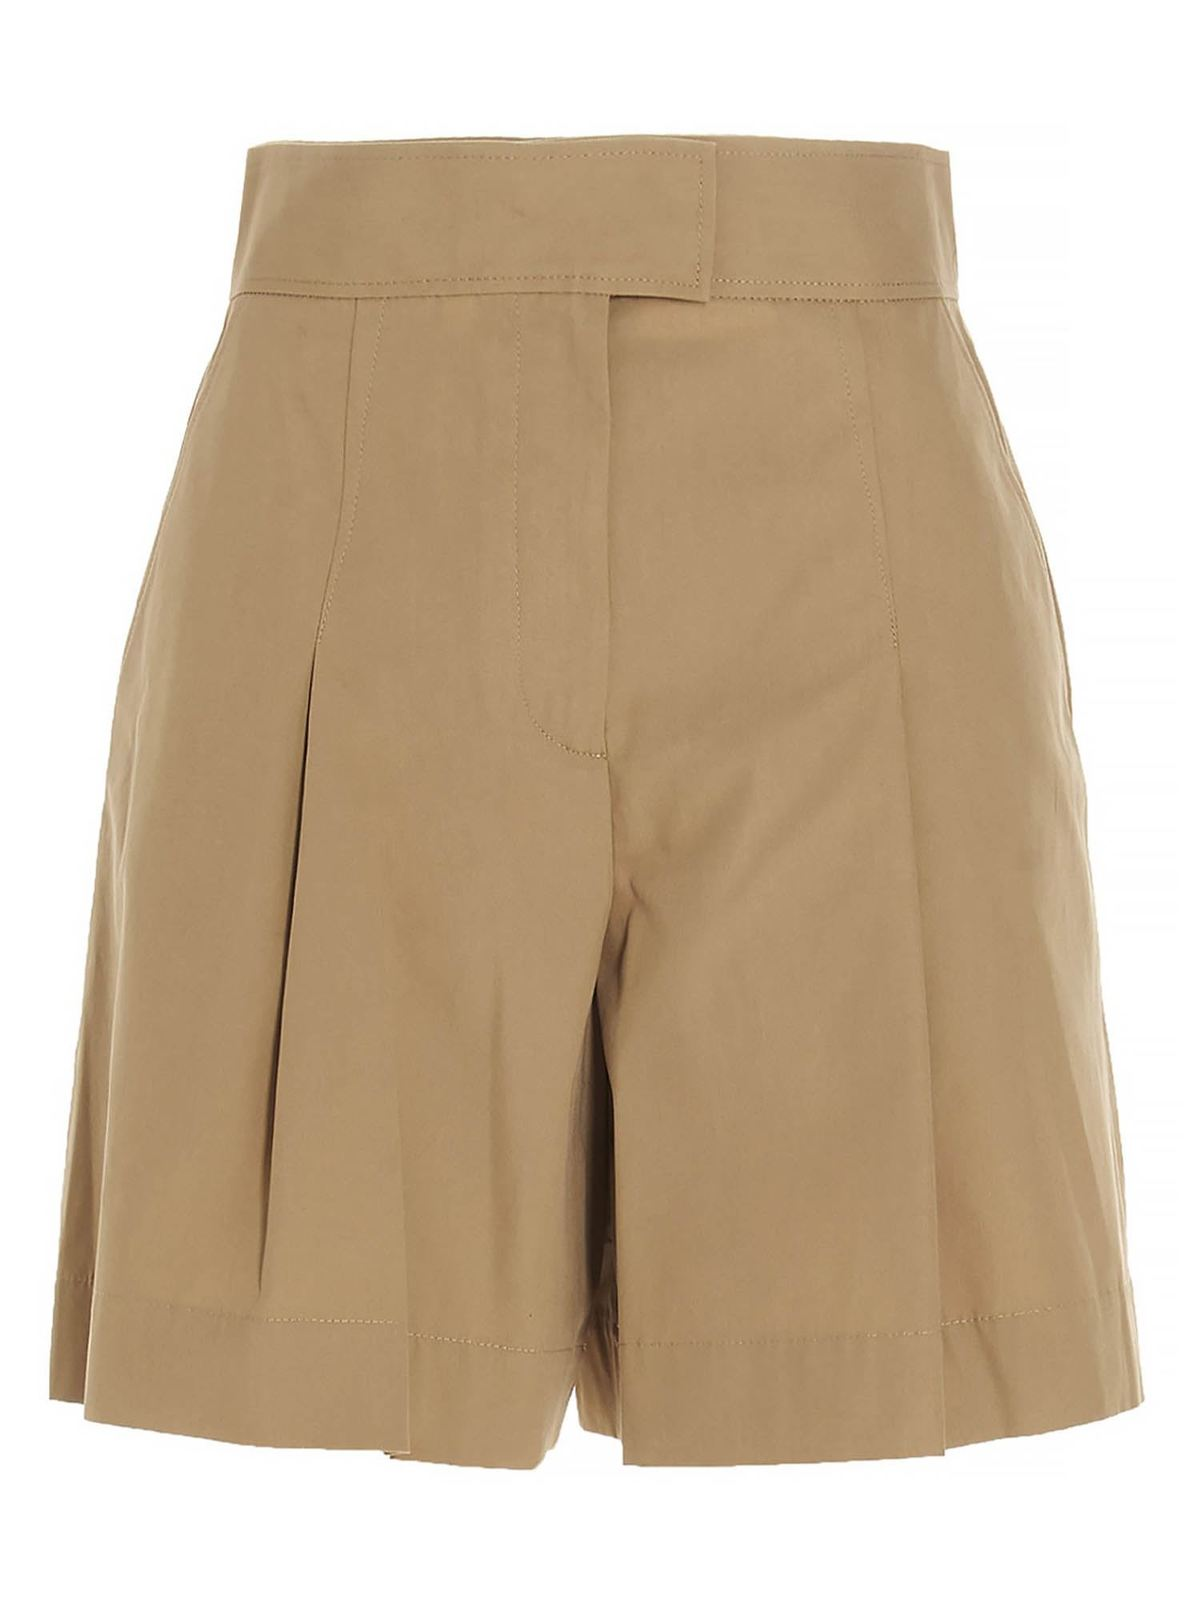 A.p.c. Cottons DIANE SHORTS IN CAMEL COLOR